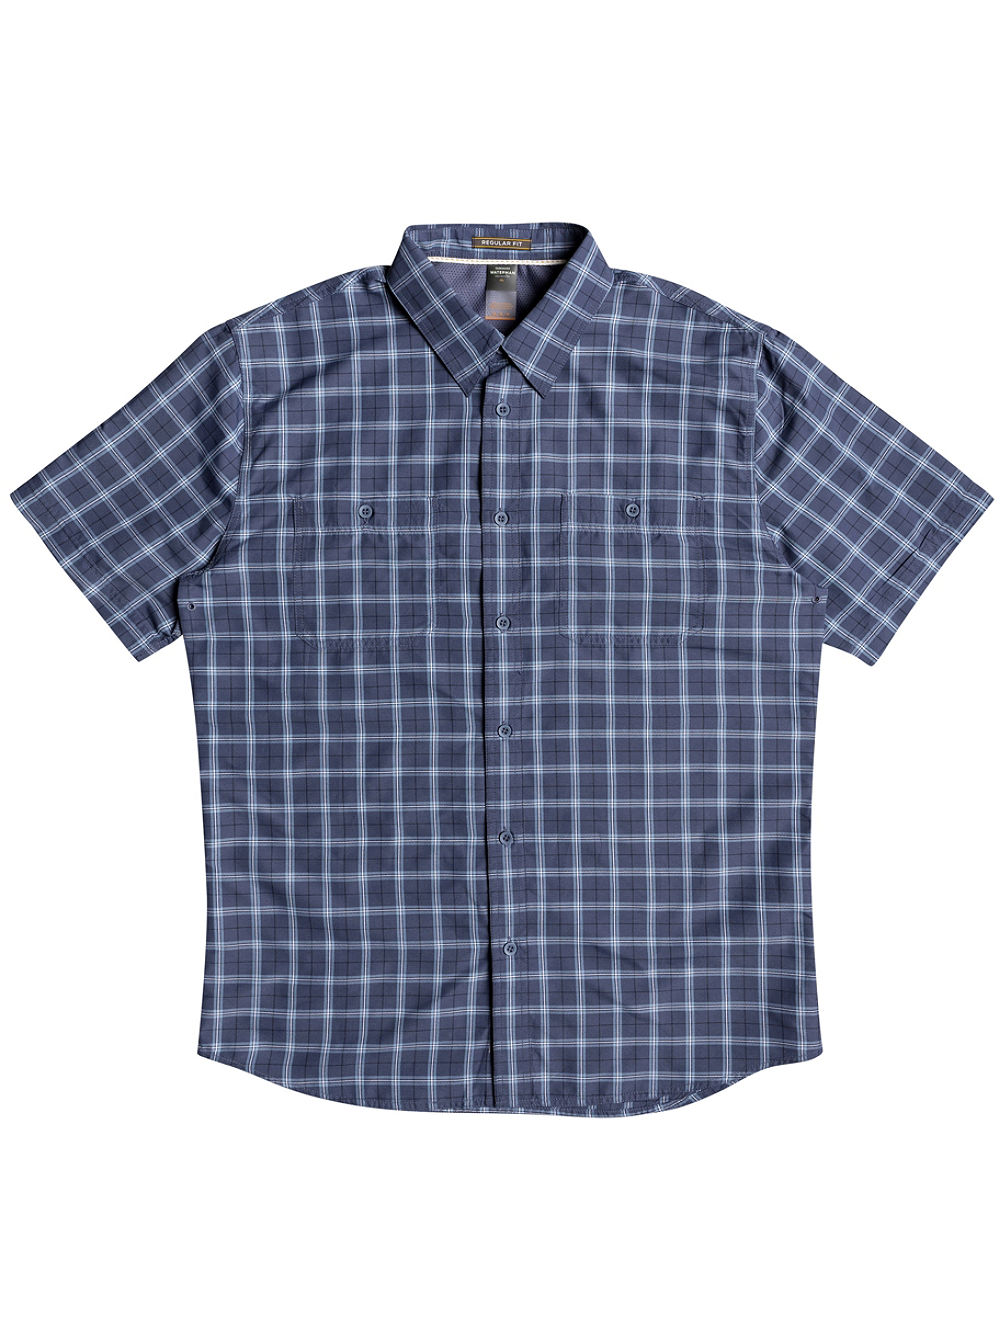 Buy quiksilver wake plaid 2 shirt online at blue for Buy plaid shirts online